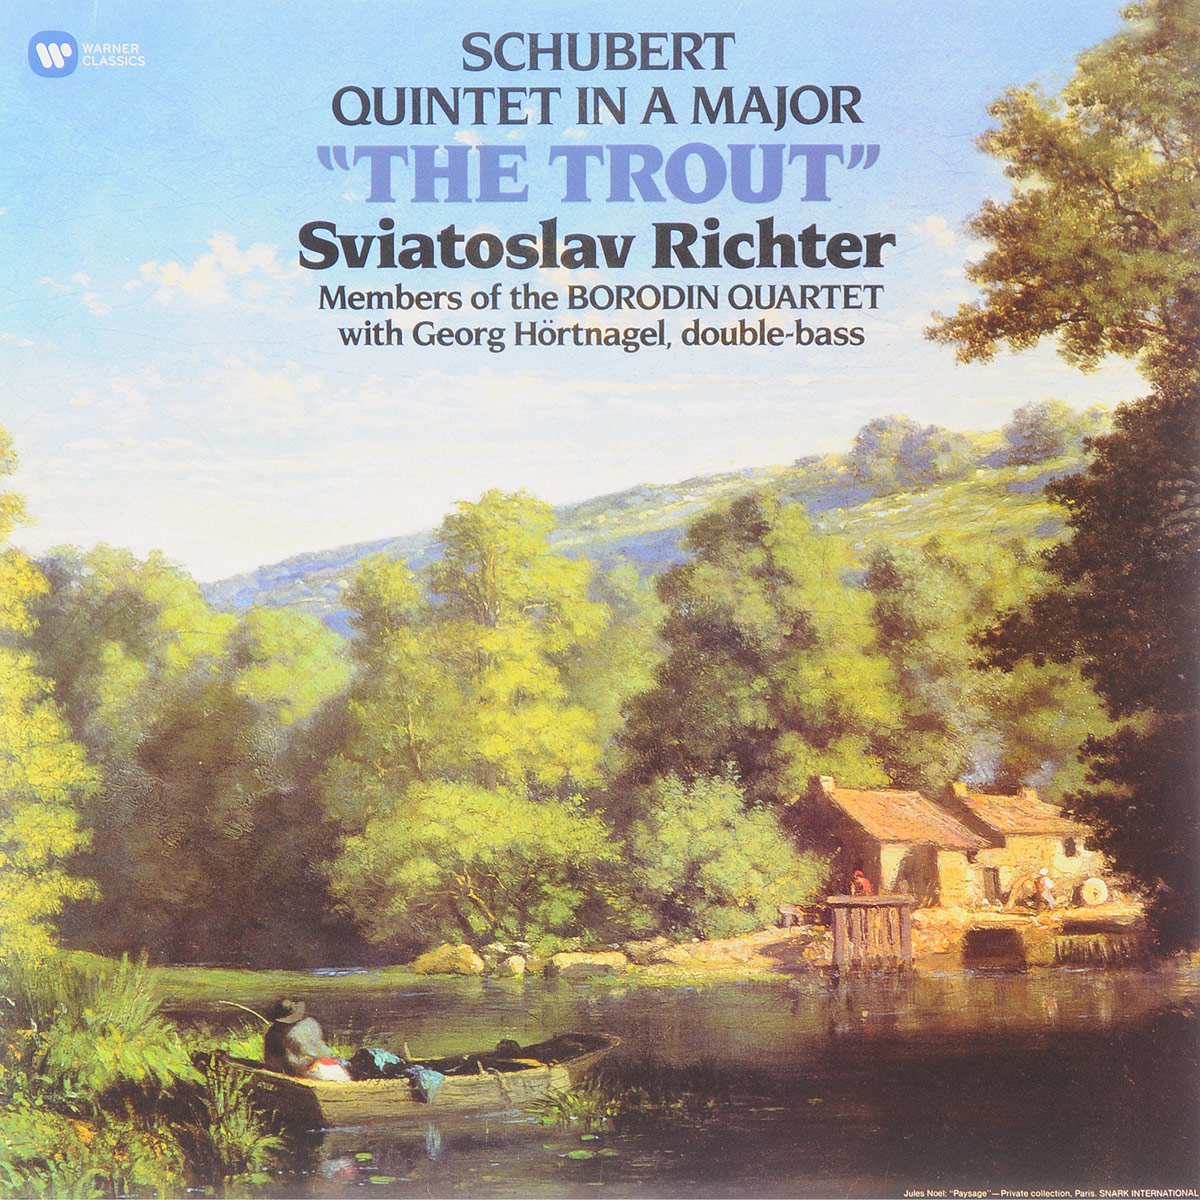 Святослав Рихтер,Государственный квартет имени Бородина Sviatoslav Richter. Schubert. Quintet In A Major The Trout (LP) walter trout walter trout face the music 25th anniversary 2 lp